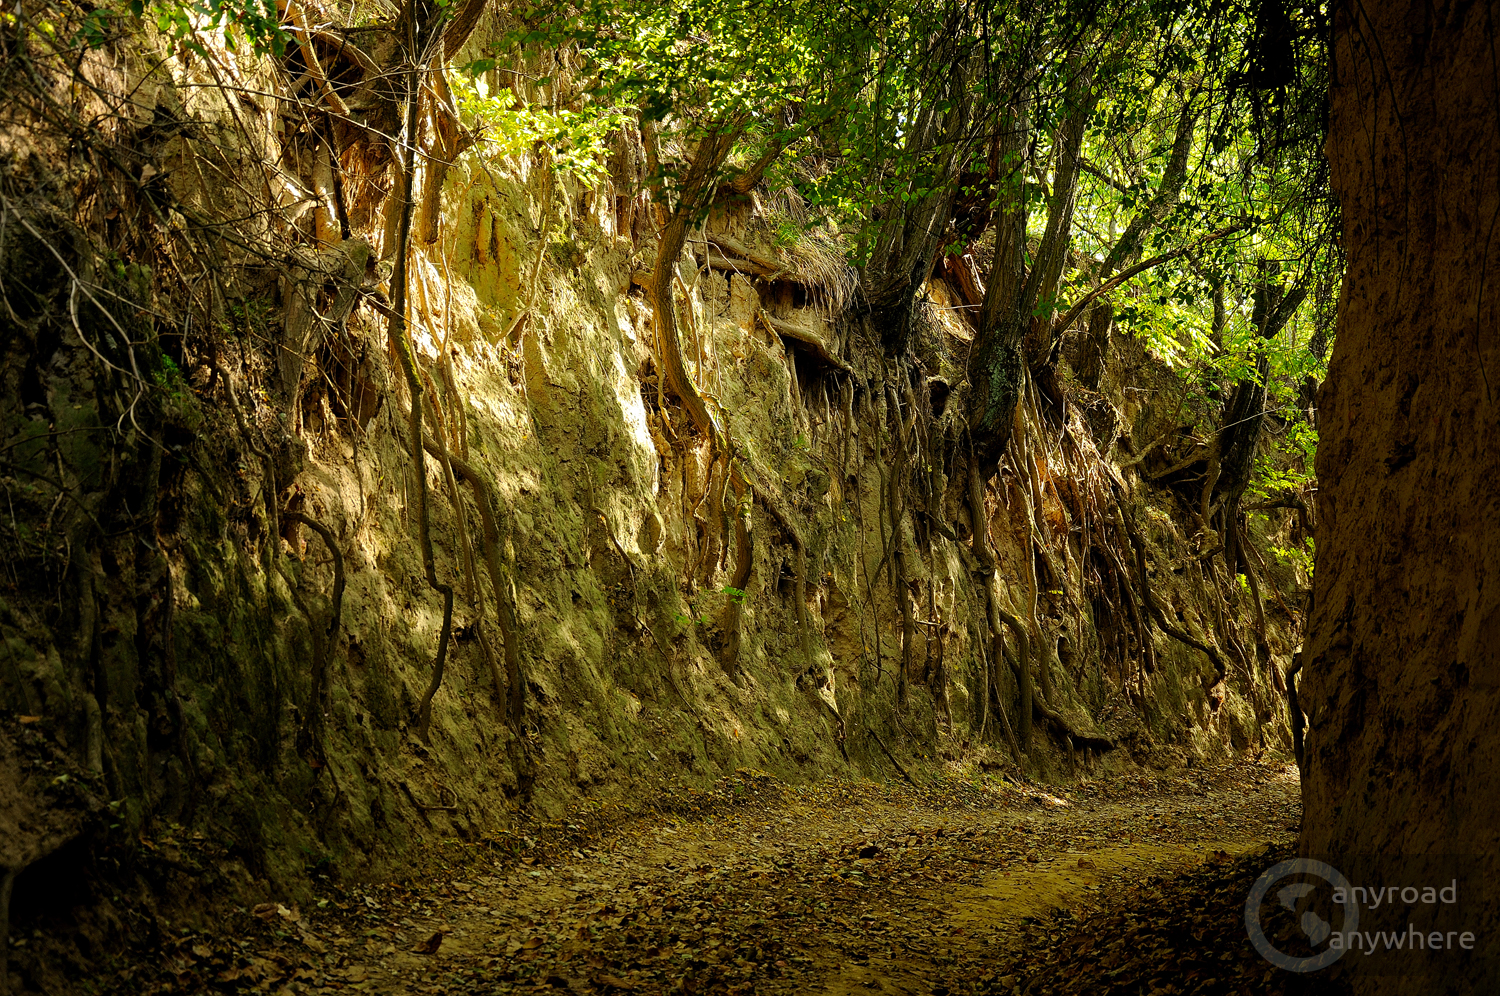 Roots of the trees embrace the high walls of the ancient road